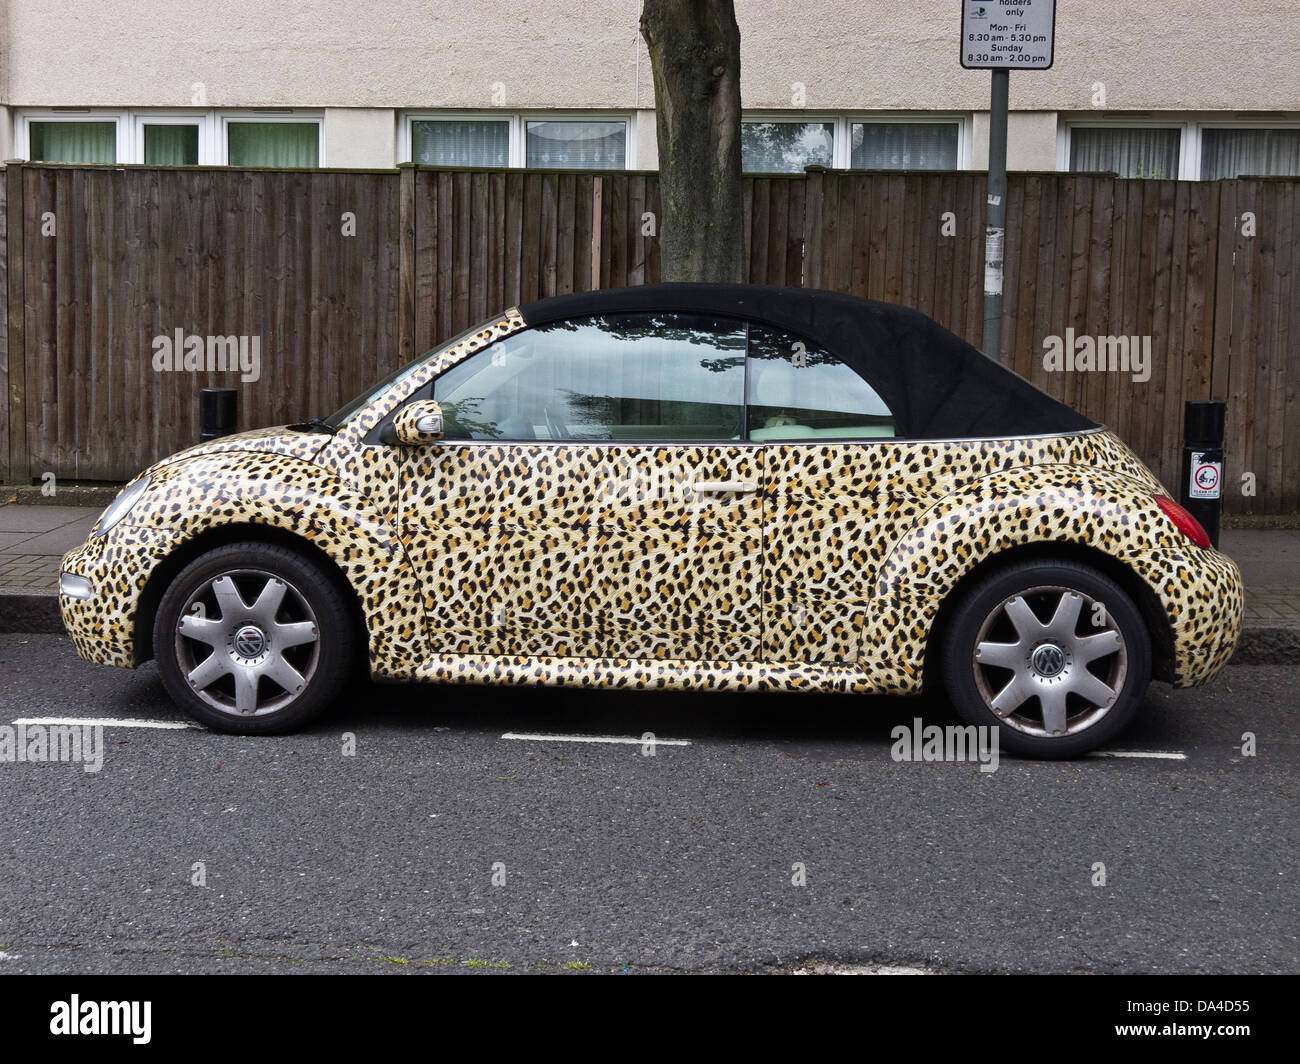 Volkswagen Beetle painted with leopard skin - Stock Image